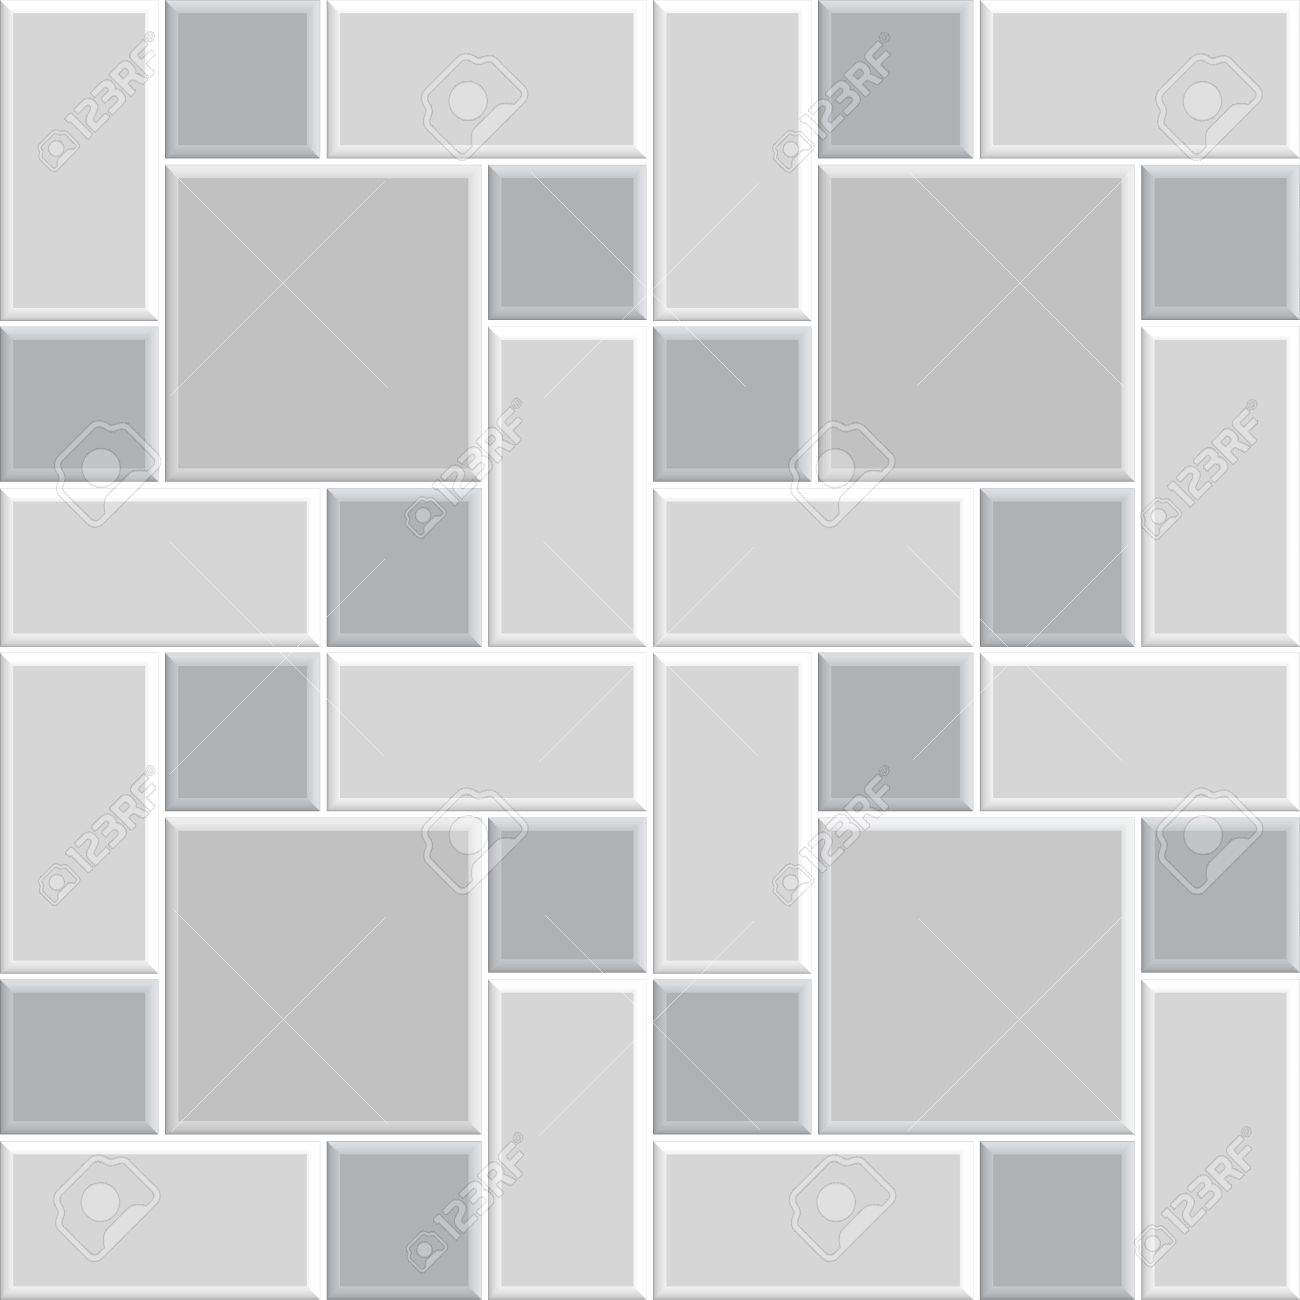 tile floor texture design. Modern Tile Texture Floor, Pattern Style Design Interior, 3d Vector Stock  Vector - 42154950 Floor A